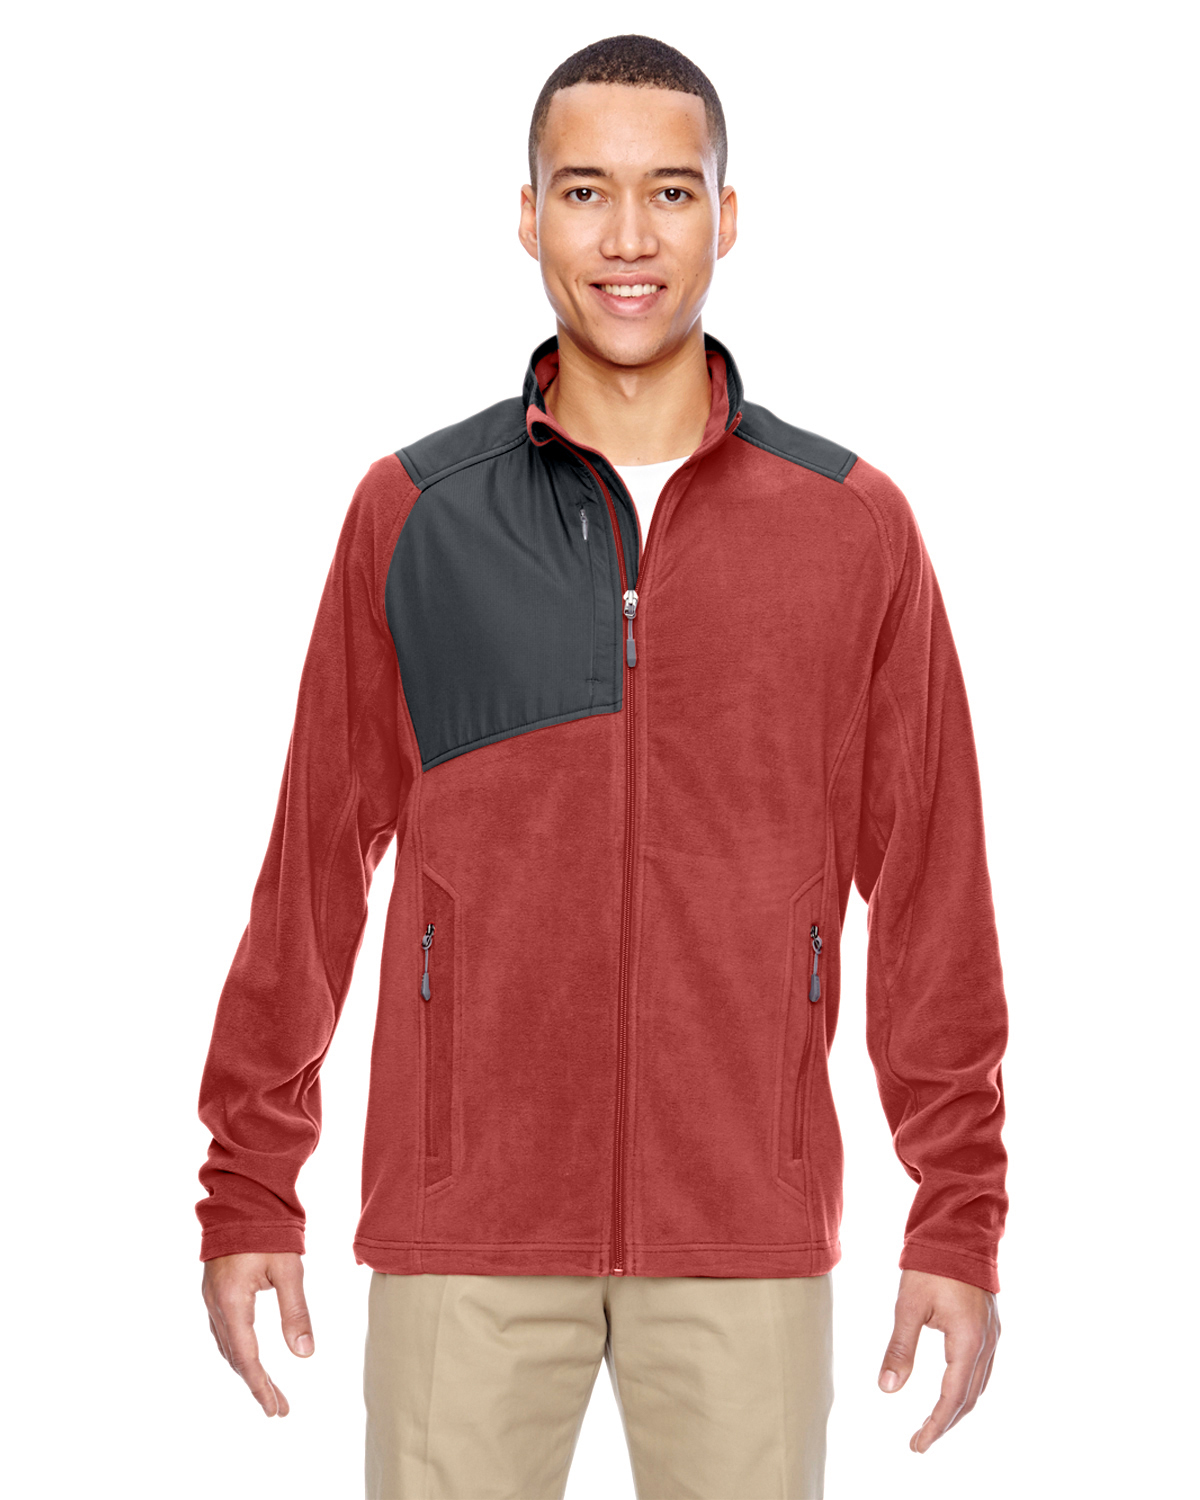 Ash City - North End 88215 - Men's Excursion Trail Fabric-Block Fleece Jacket